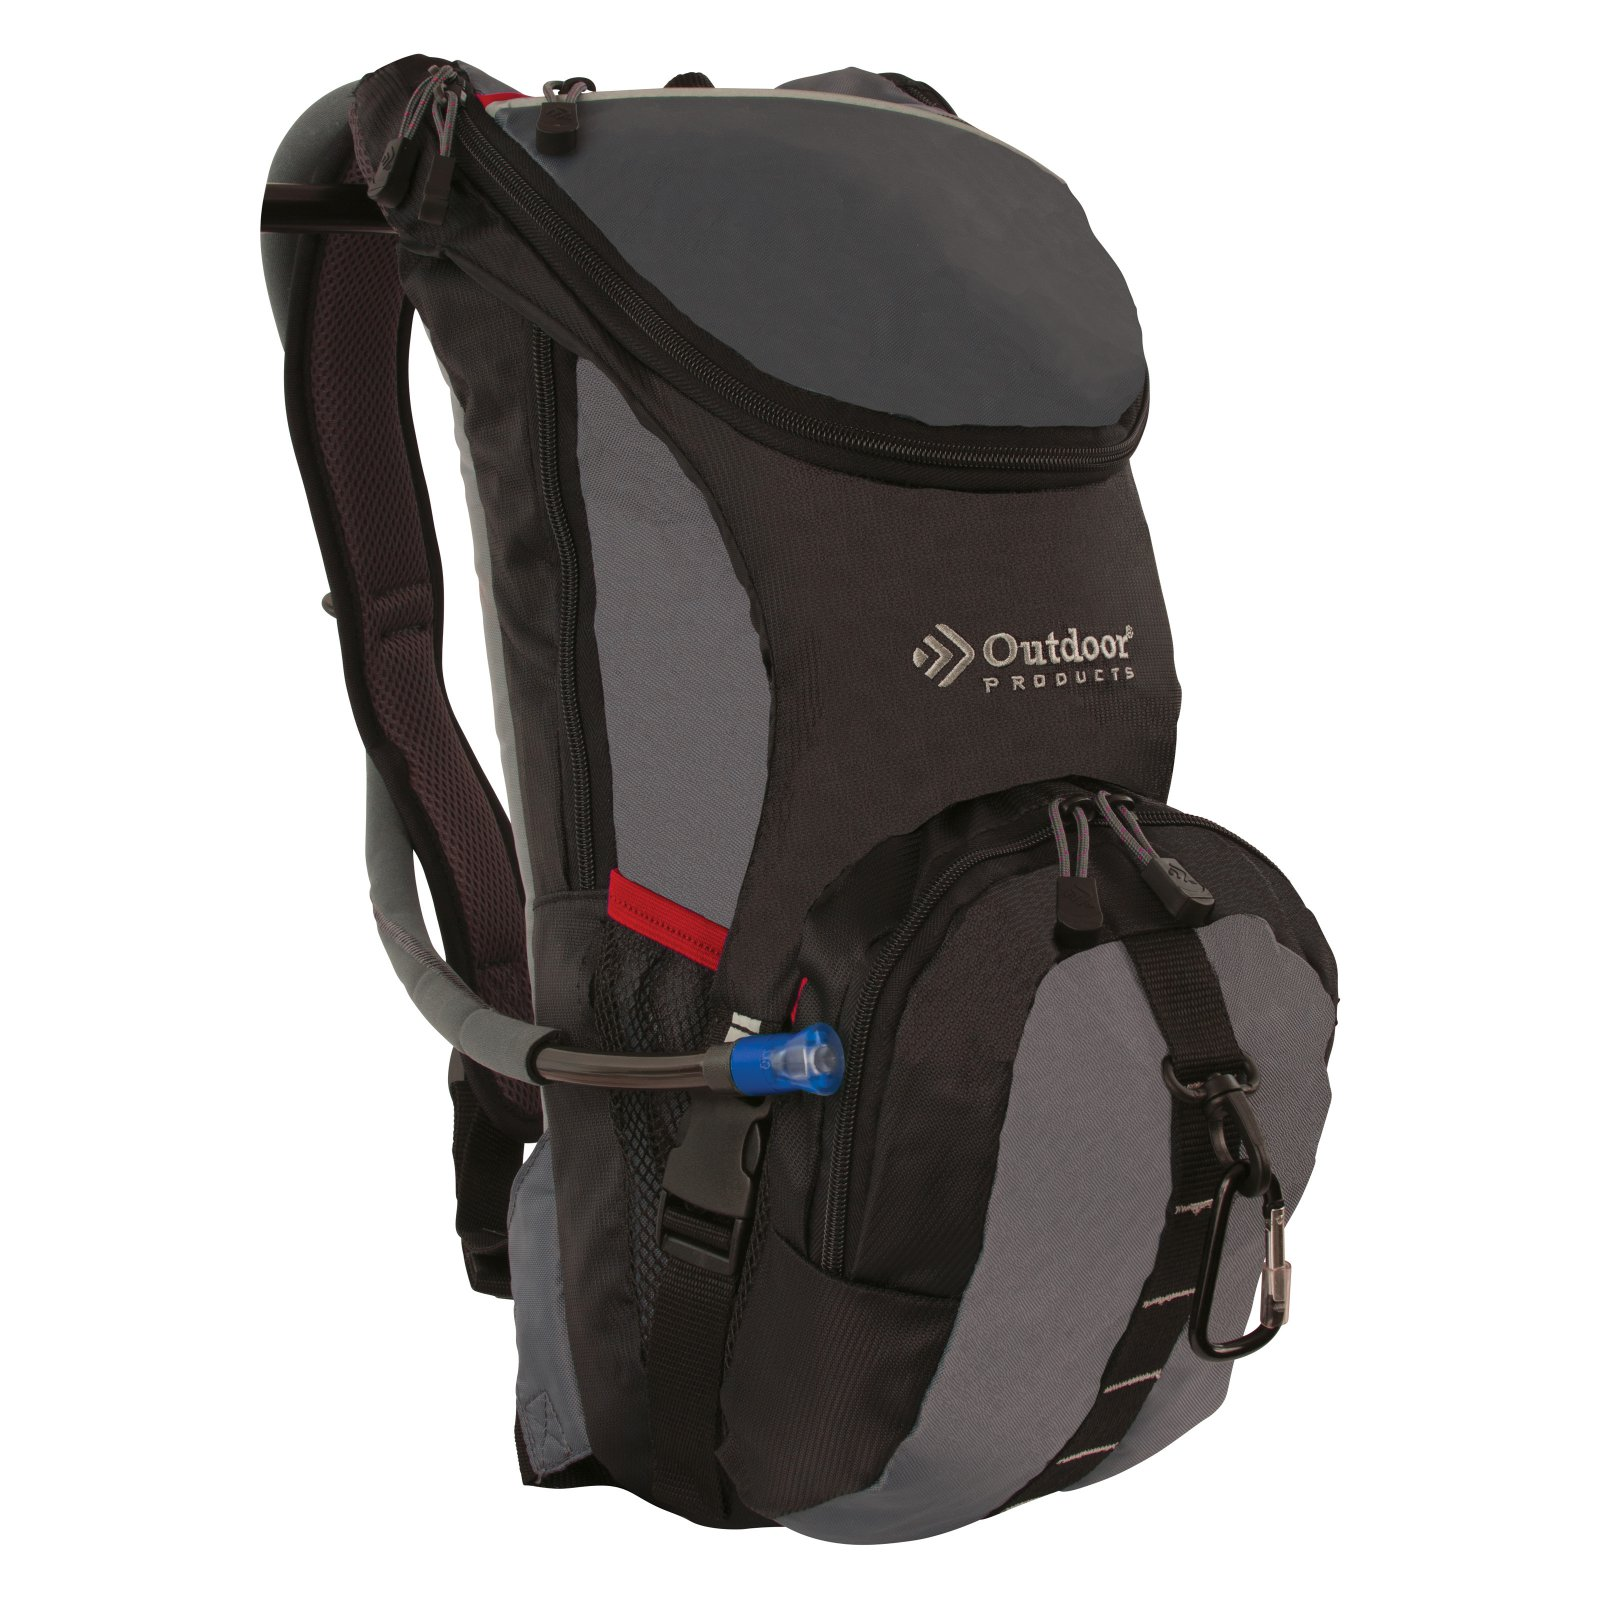 Outdoor Products Ripcord Hydration Pack by The Outdoor Recreation Group